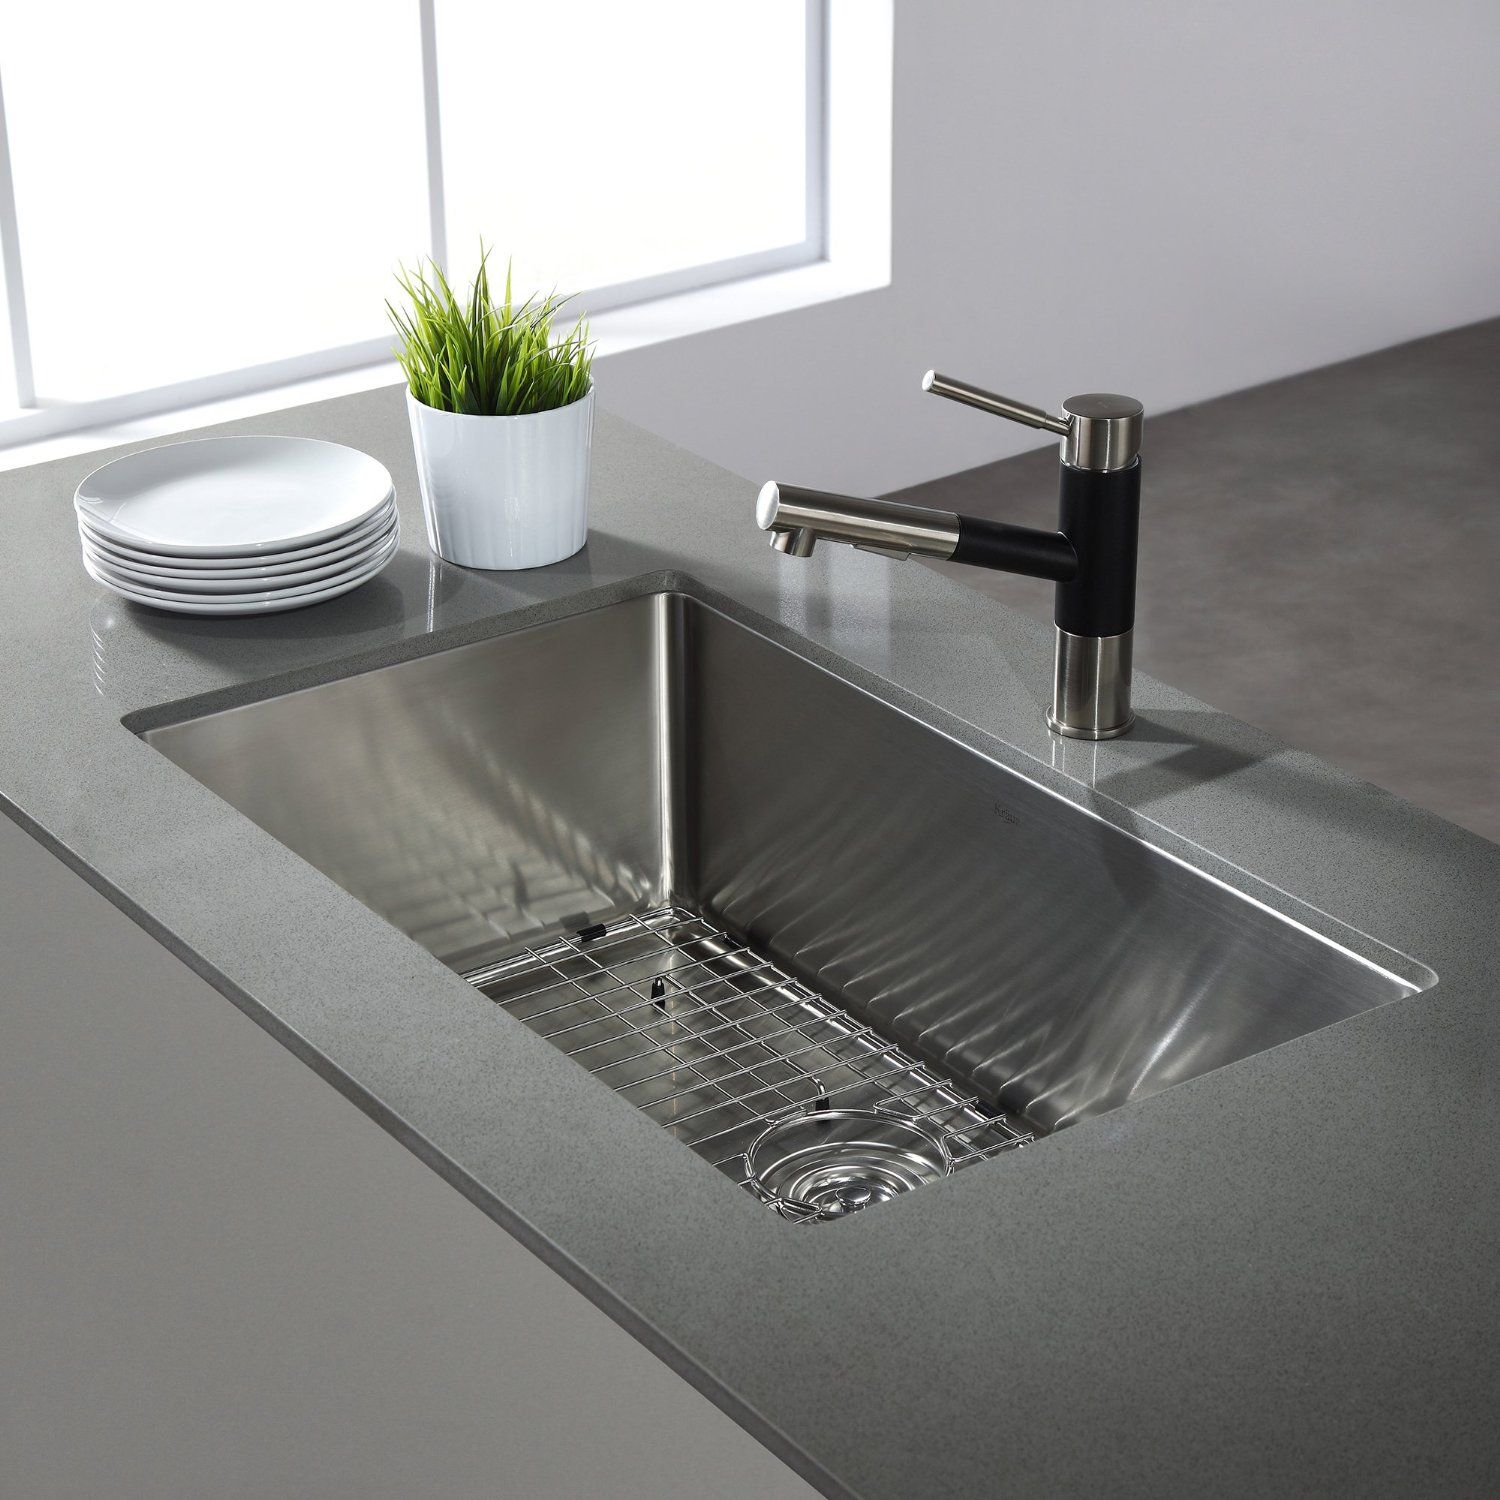 top 10 best stainless steel single bowl kitchen sinks in 2020 single bowl kitchen sink best on kitchen sink id=50891